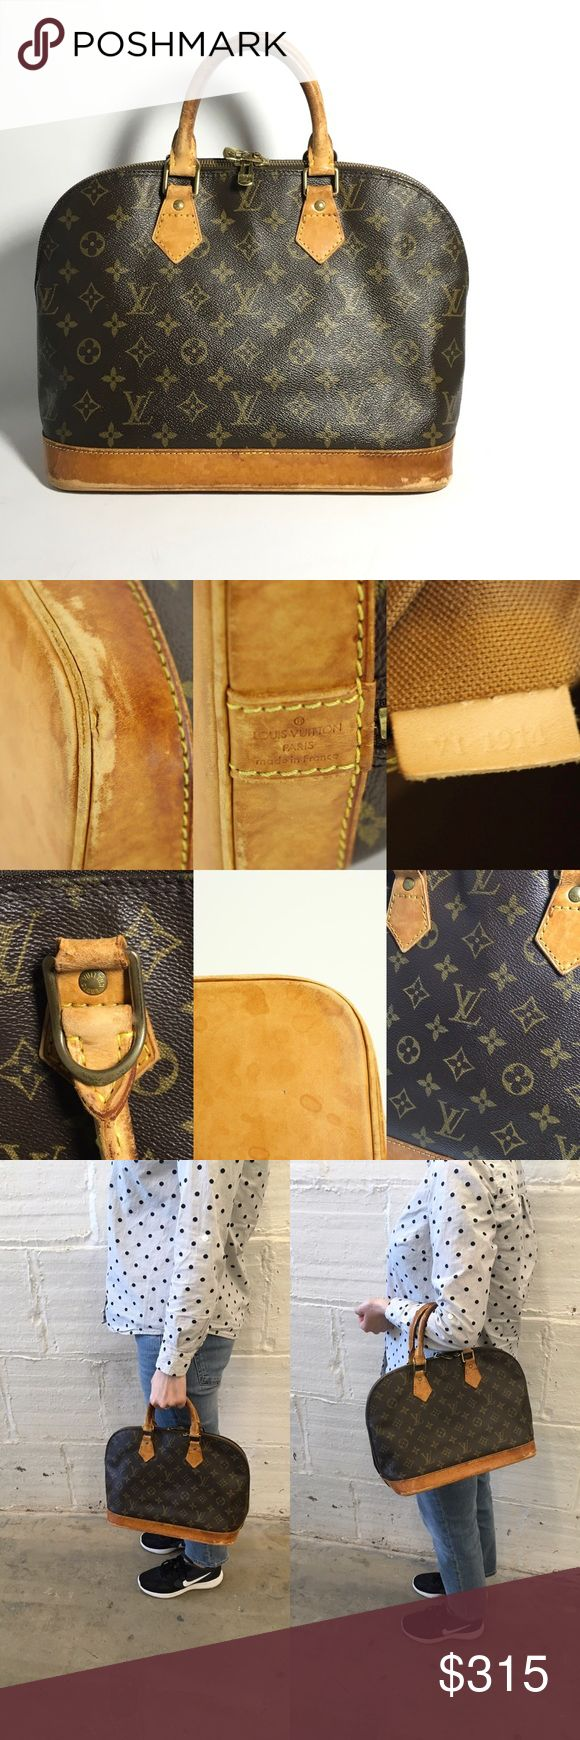 Authentic Louis Vuitton Alma Bag No lowballing, no trade!  SN: VI 1914 OK condition with signs of wear Canvas shows minor whitish marks in a few spots, minor scuff marks.  Leather trims have discoloration, stains, scuffing, minor cracks, scratches.  Leather bottom part has stains, discoloration, cracks, rubbing.  Corners show abrasion, heavy rubbing, minor cracks.  Handles have discoloration, rubbing, scuffing, aging. Hardware shows tarnishing.  Interior shows minor snags on canvas, minor…